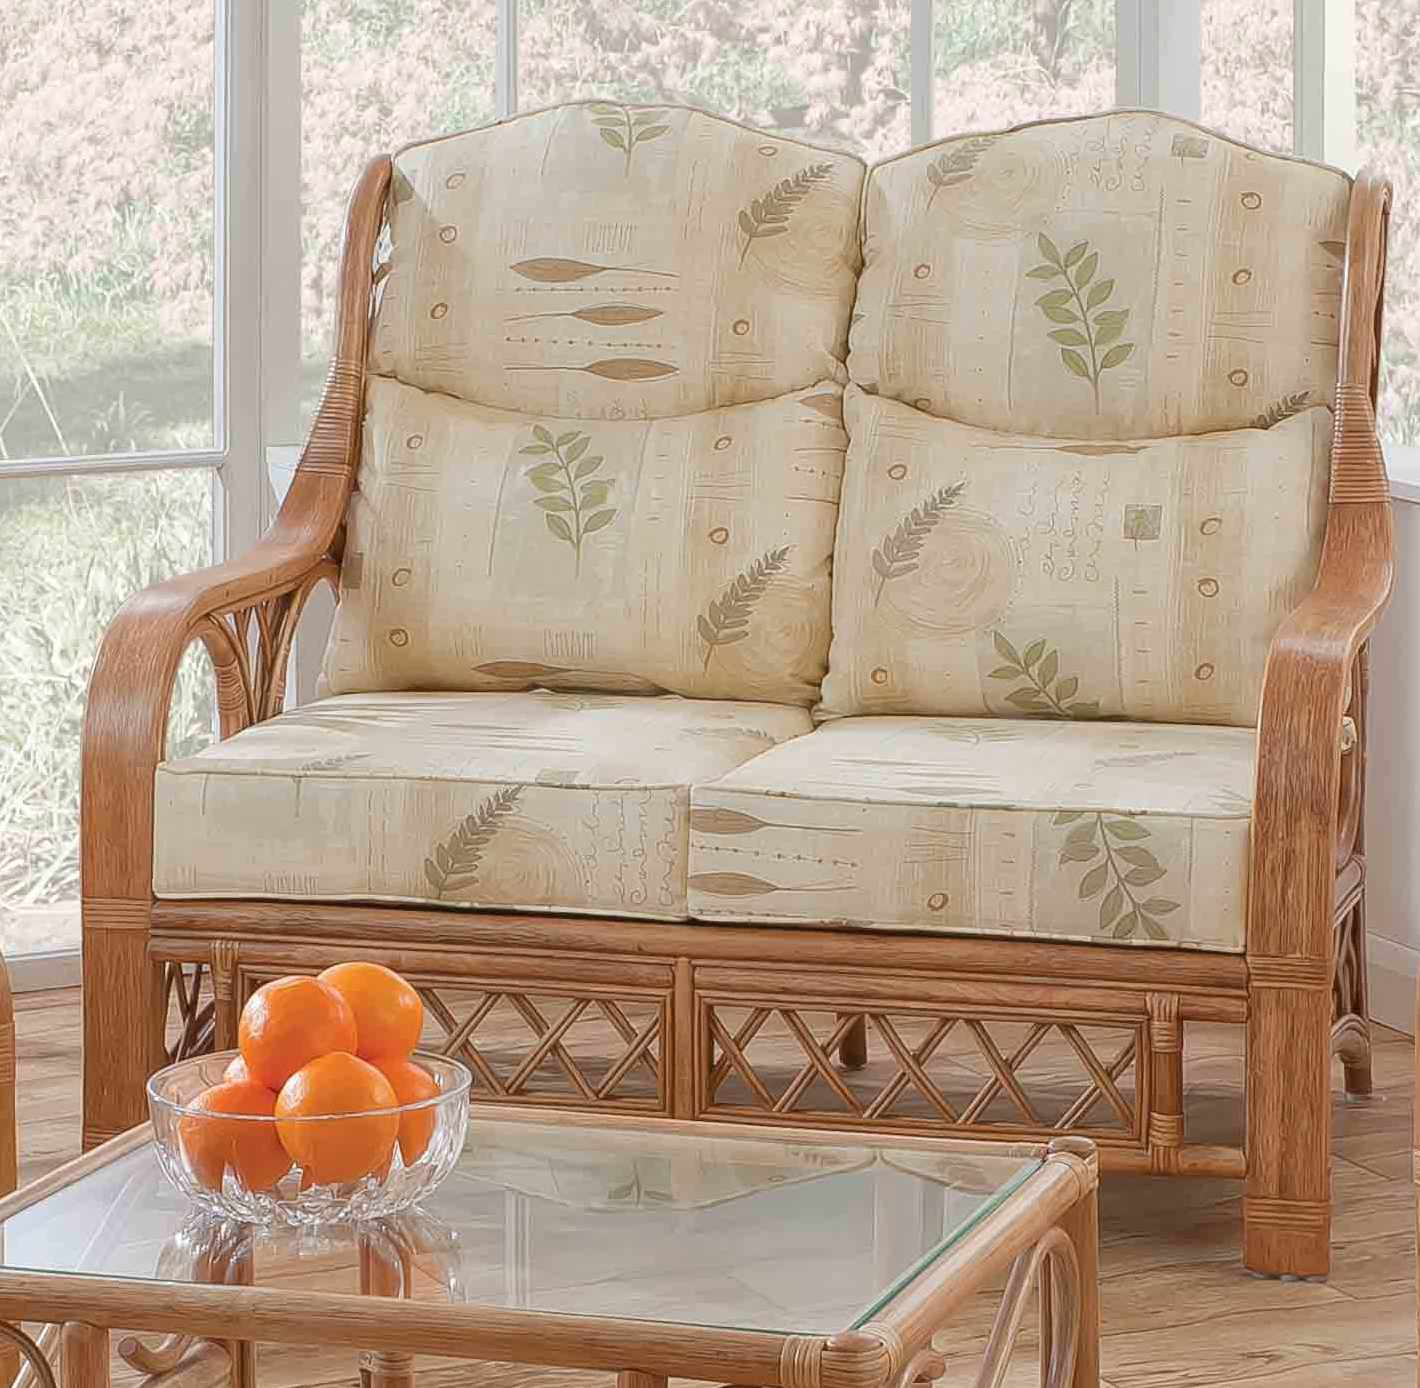 Tivoli 2 Seater Cane Sofa Natural